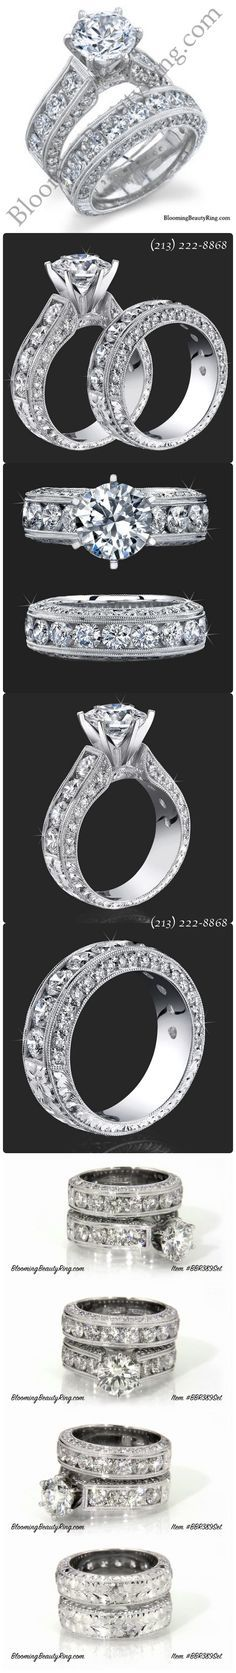 """(Click on the picture to see this ring in HD video on our website)    This hand-made engagement ring set is almost beyond description!    Each ring has over 2 carats of top quality """"accent diamonds"""" alone!  Pictures show a 2 carat center stone making the rings = 6.10 ctw.    (Queen Elizabeth herself would be jealous!!)  (213) 222-8868  BloomingBeautyRing.com"""